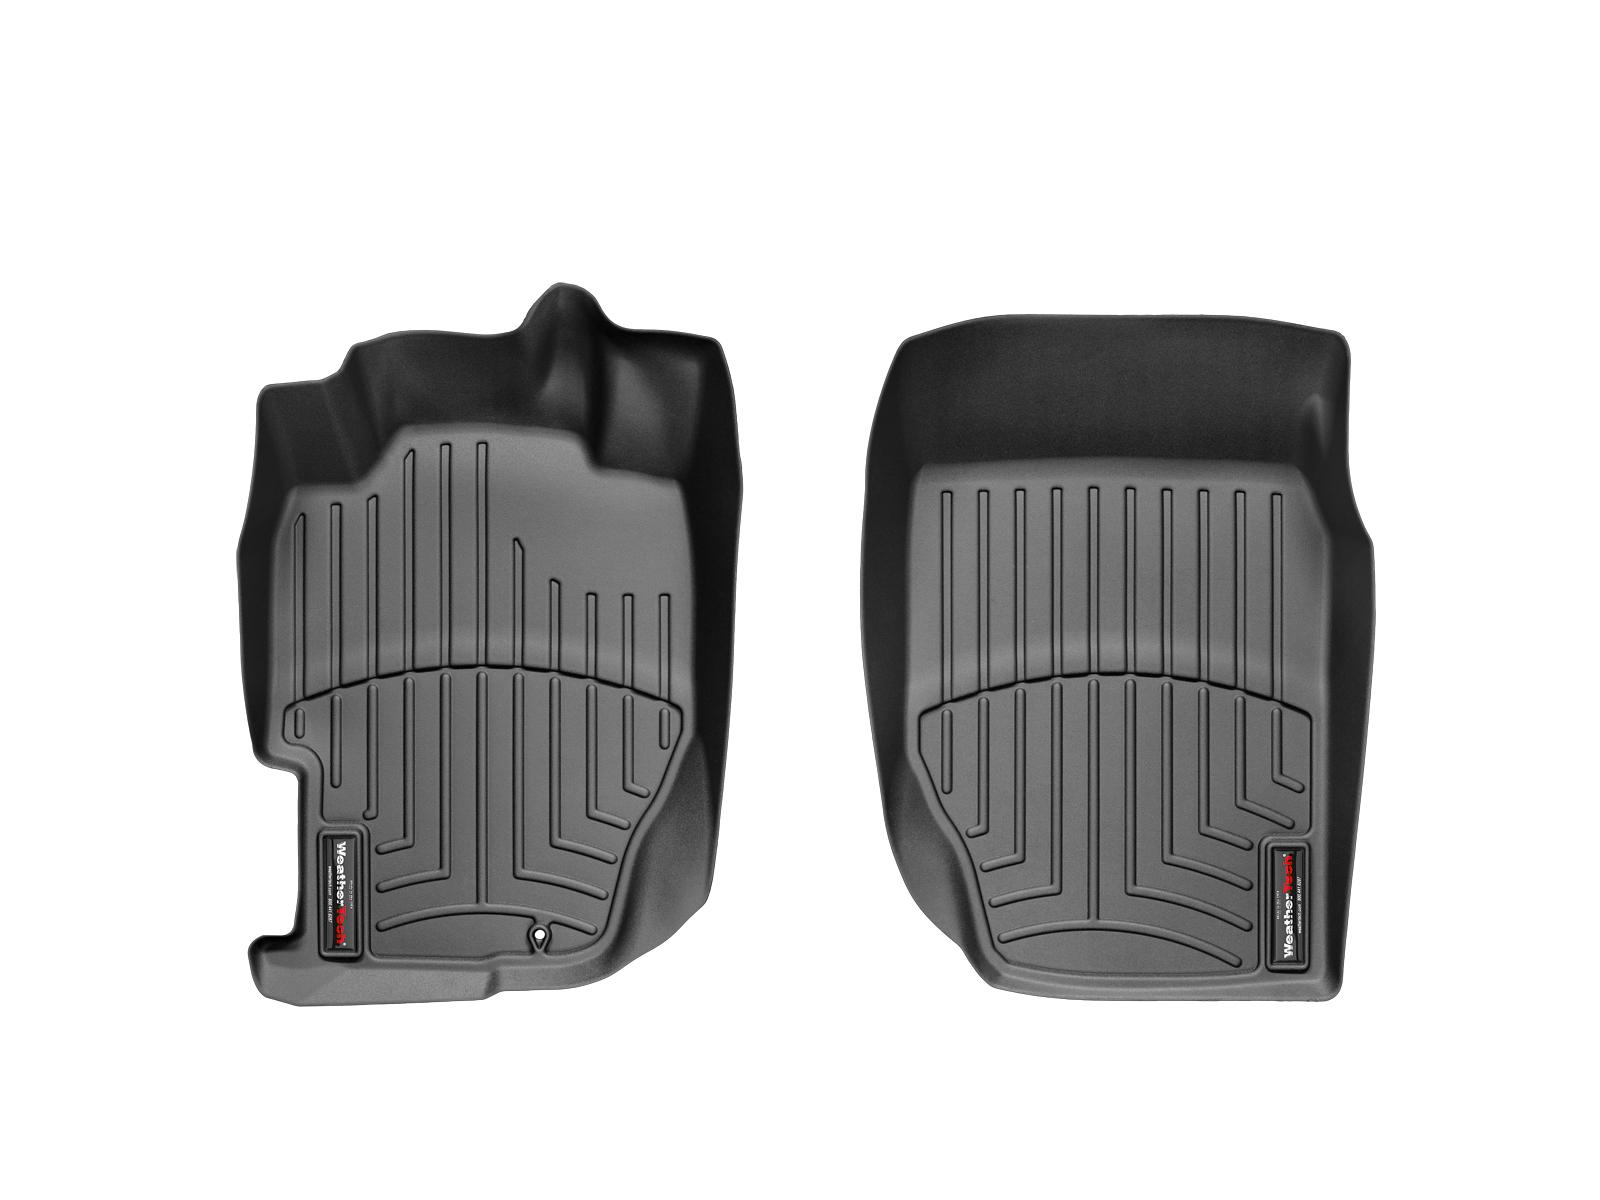 1999 Honda Accord Avm Hd Floor Mats Heavy Duty Flexible Trim To Black Custom Fit Laser Measured Floorliners Are Available For The Individual Availability Is Based On Your Vehicles Options